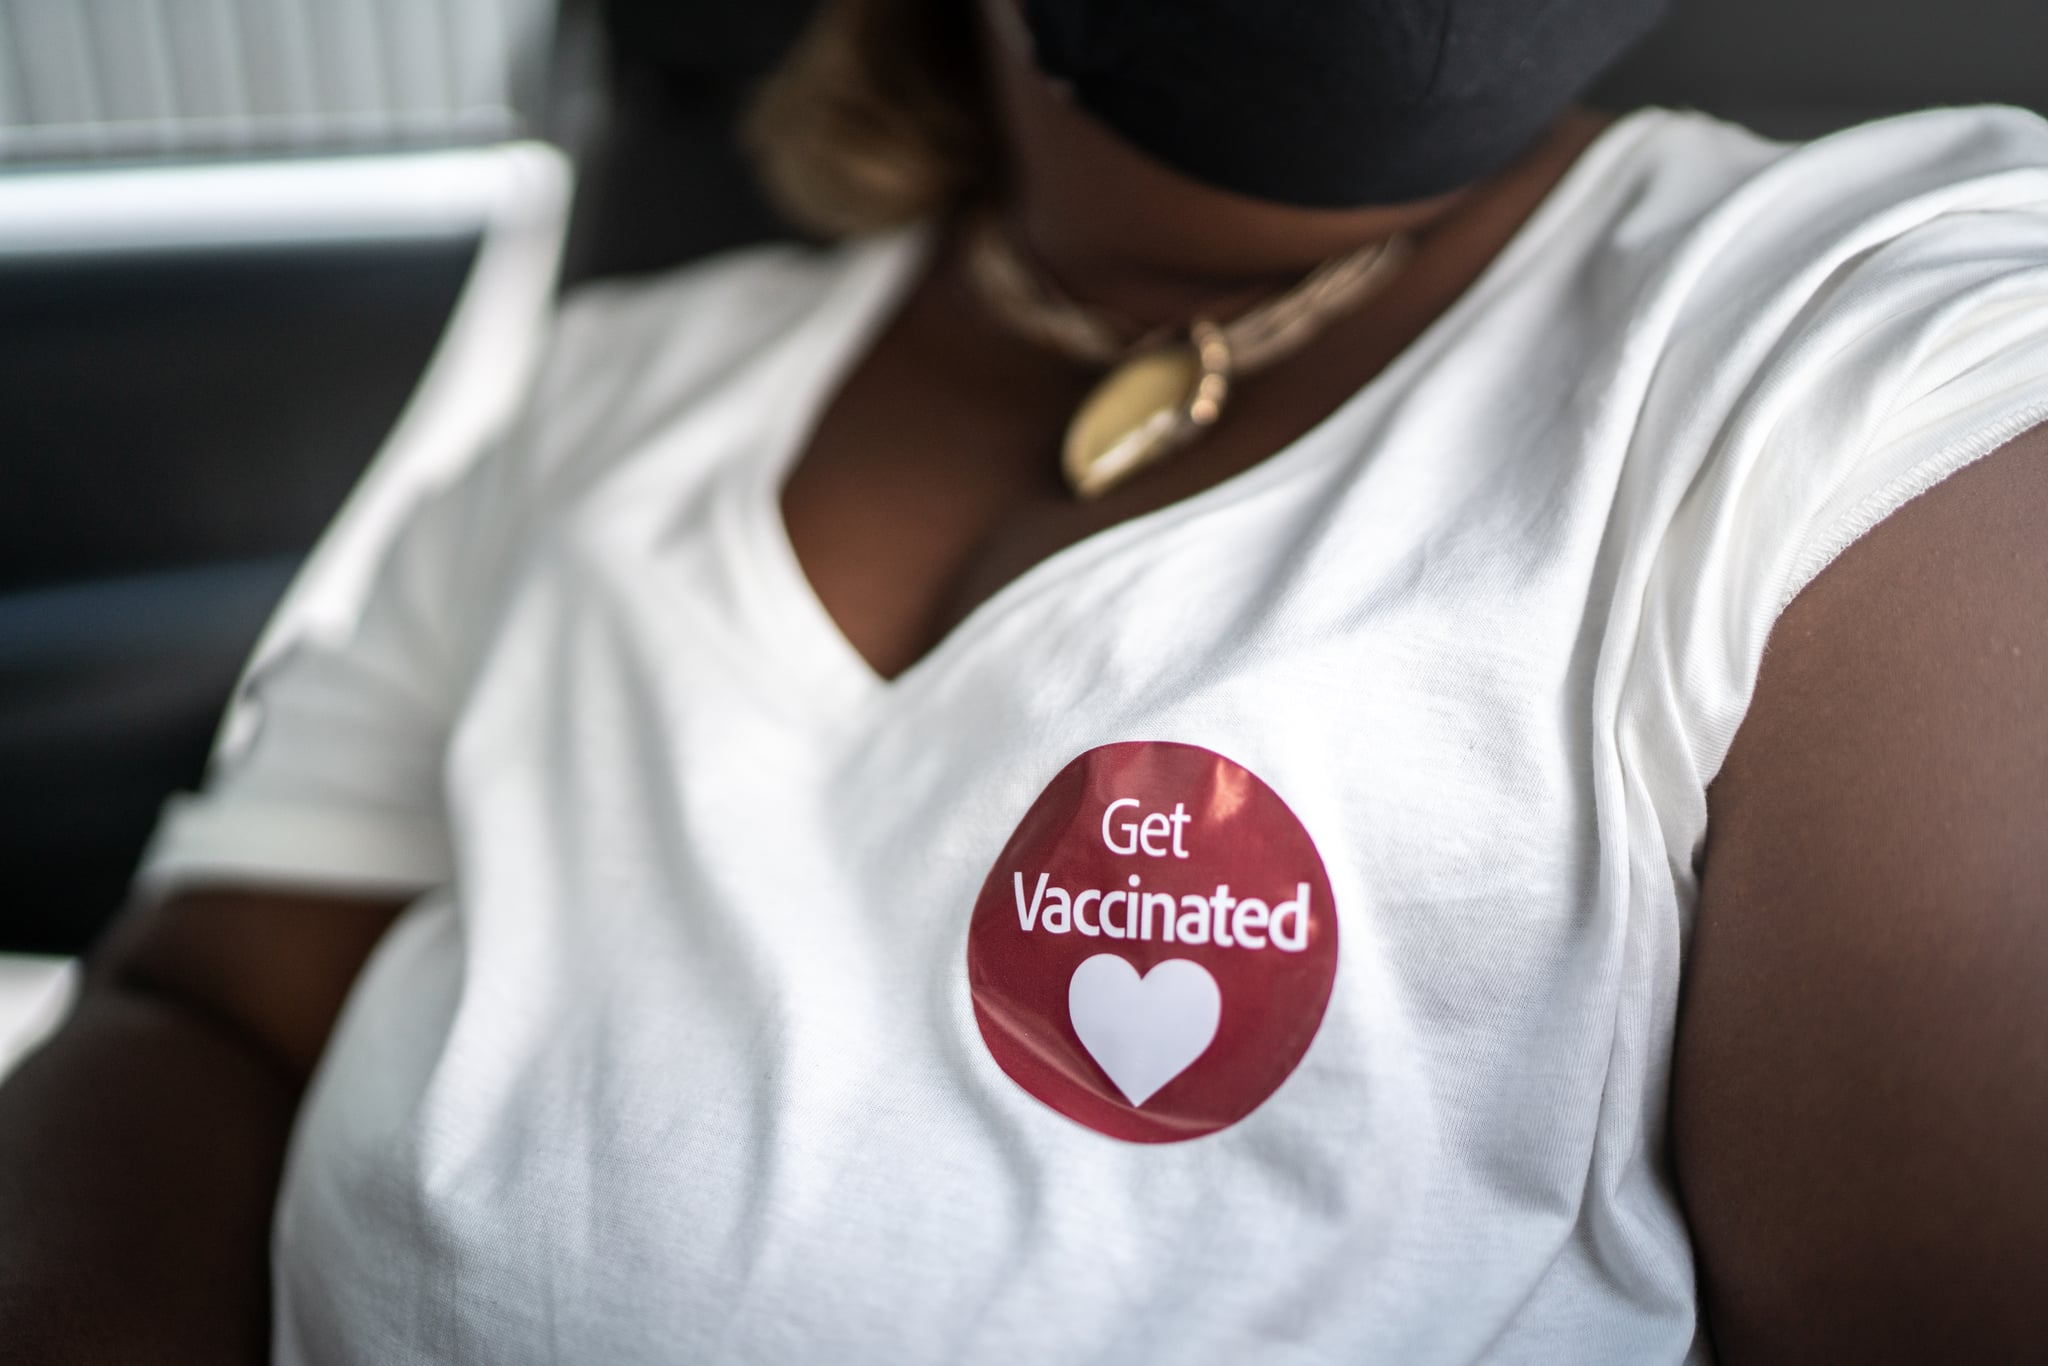 'Get vaccinated' sticker in a woman's shirt in a drive through